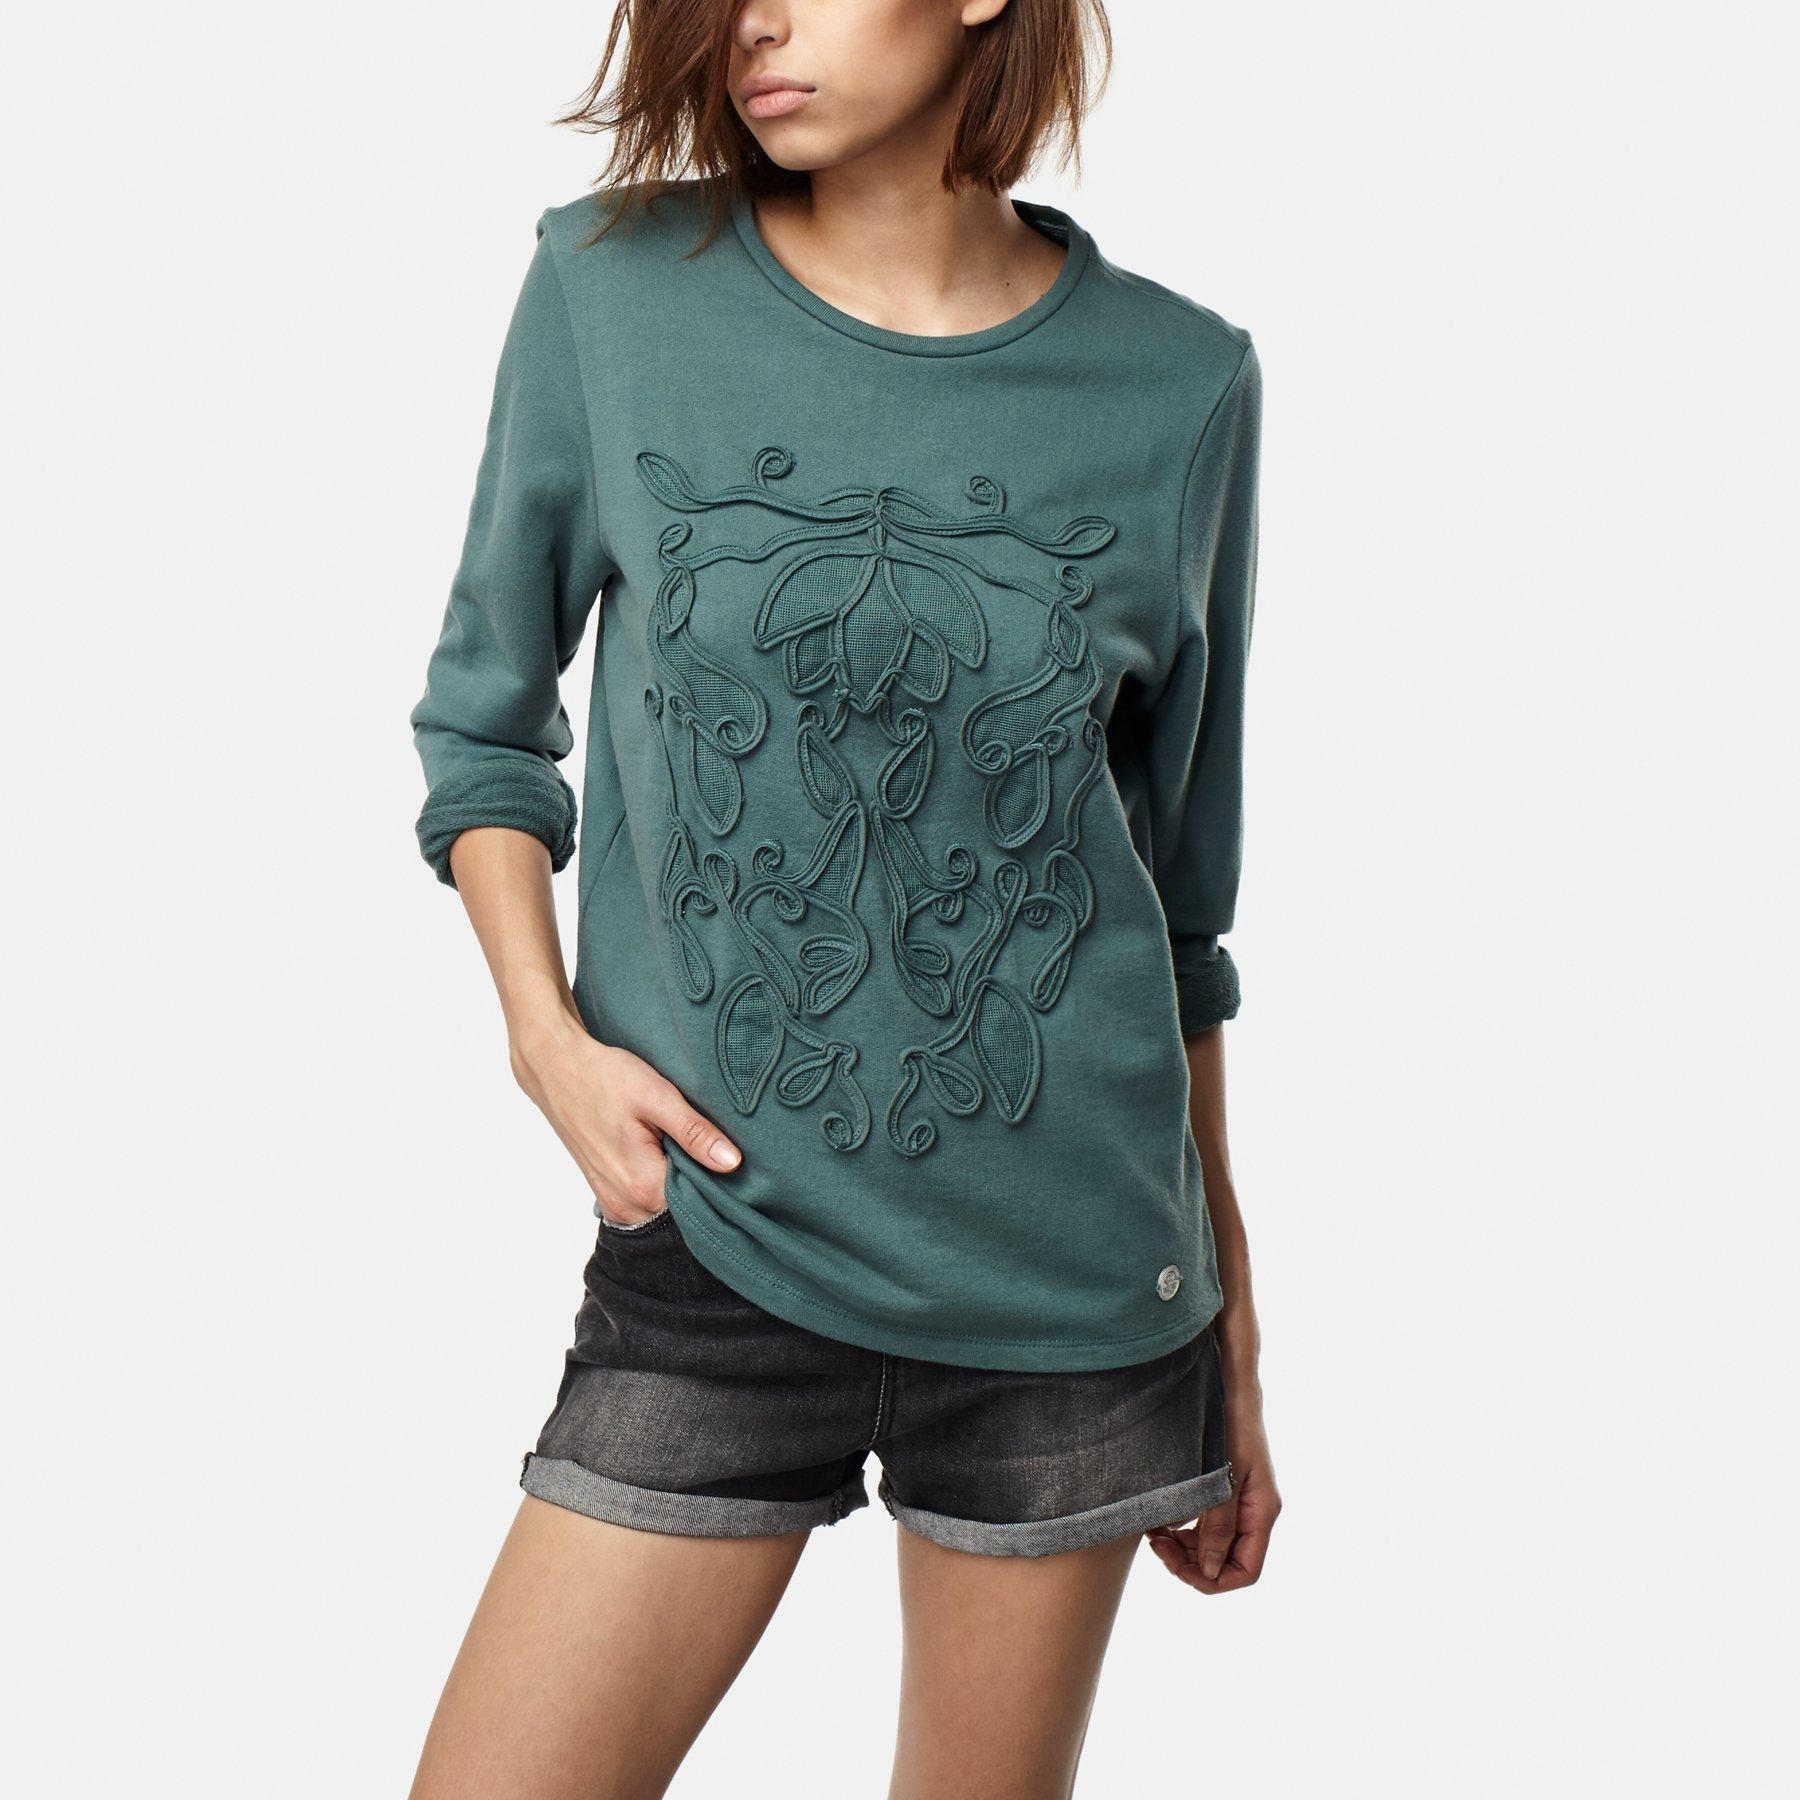 O'Neill Sweater »Lace detail«